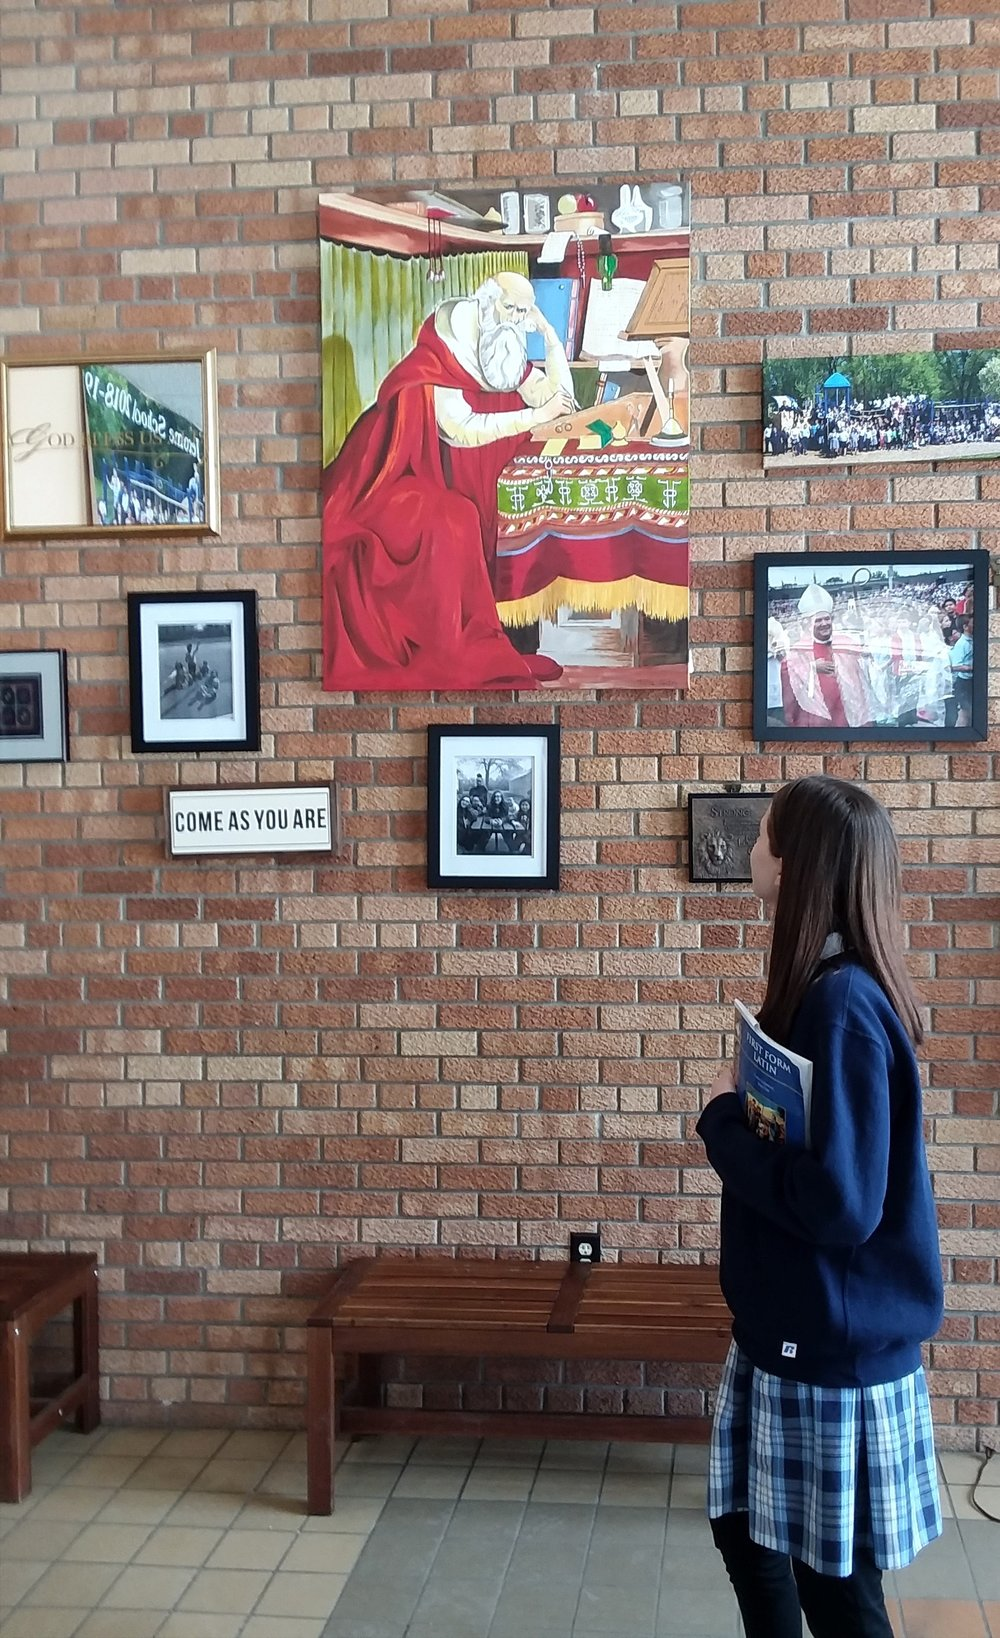 - A seventh-grader pauses in front of an image of St. Jerome in his study.